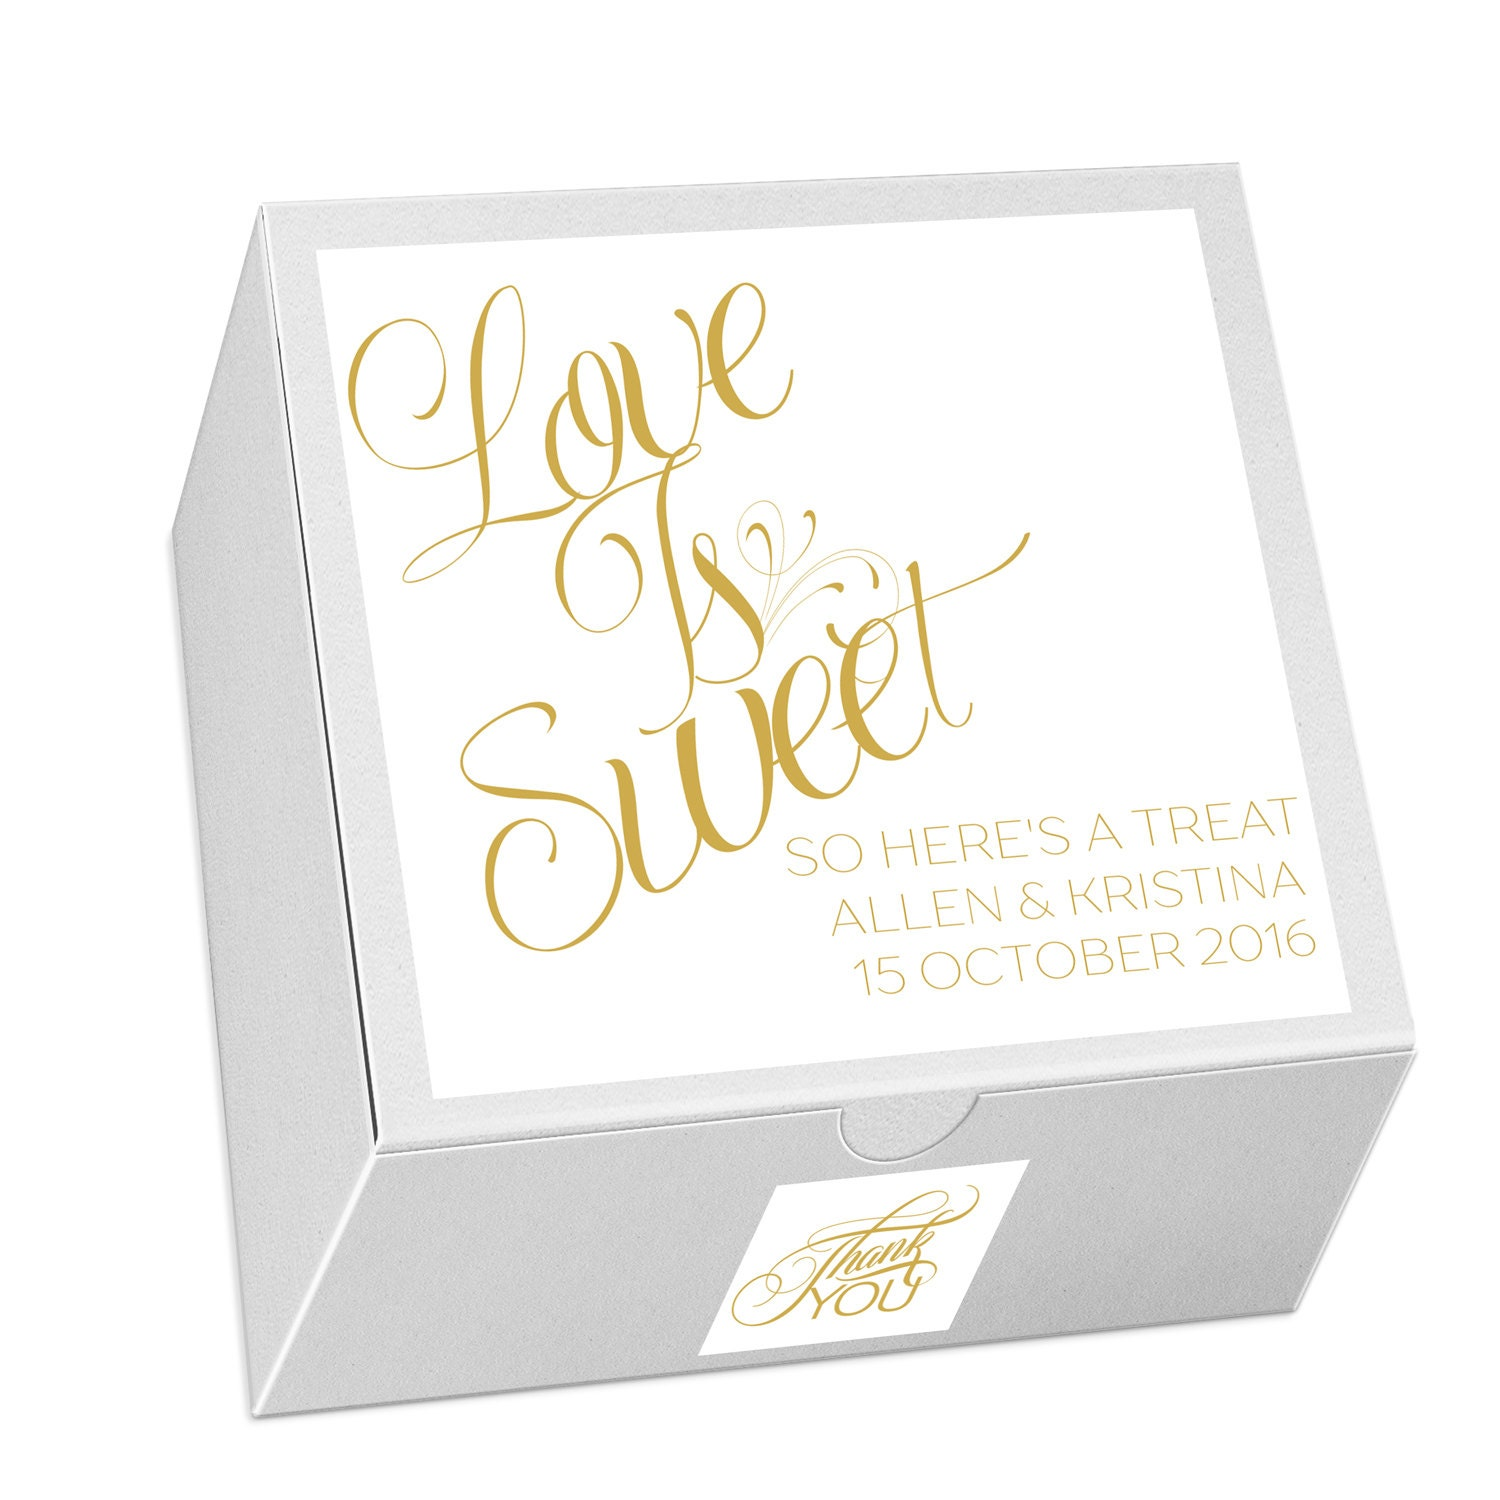 Small Wedding Cake Box Wedding Favors Mr and Mrs Event